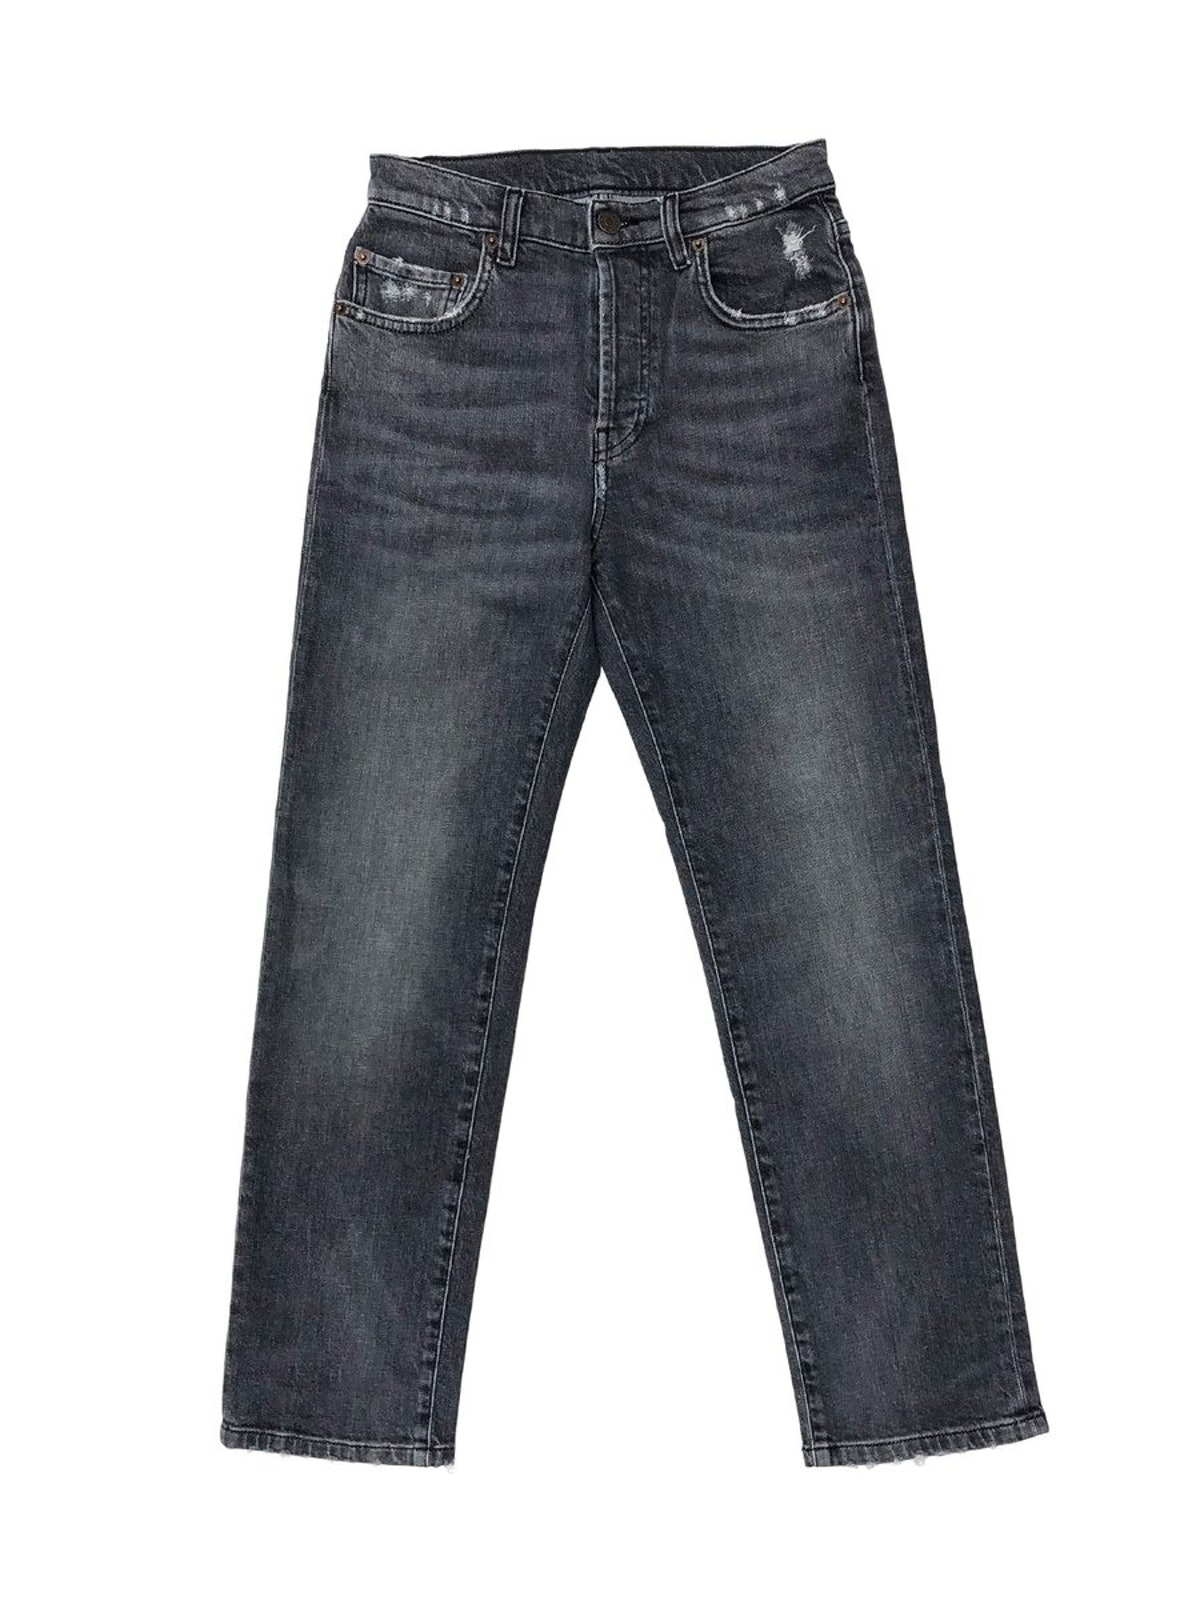 495 Jean in Worn Grey from 6397.